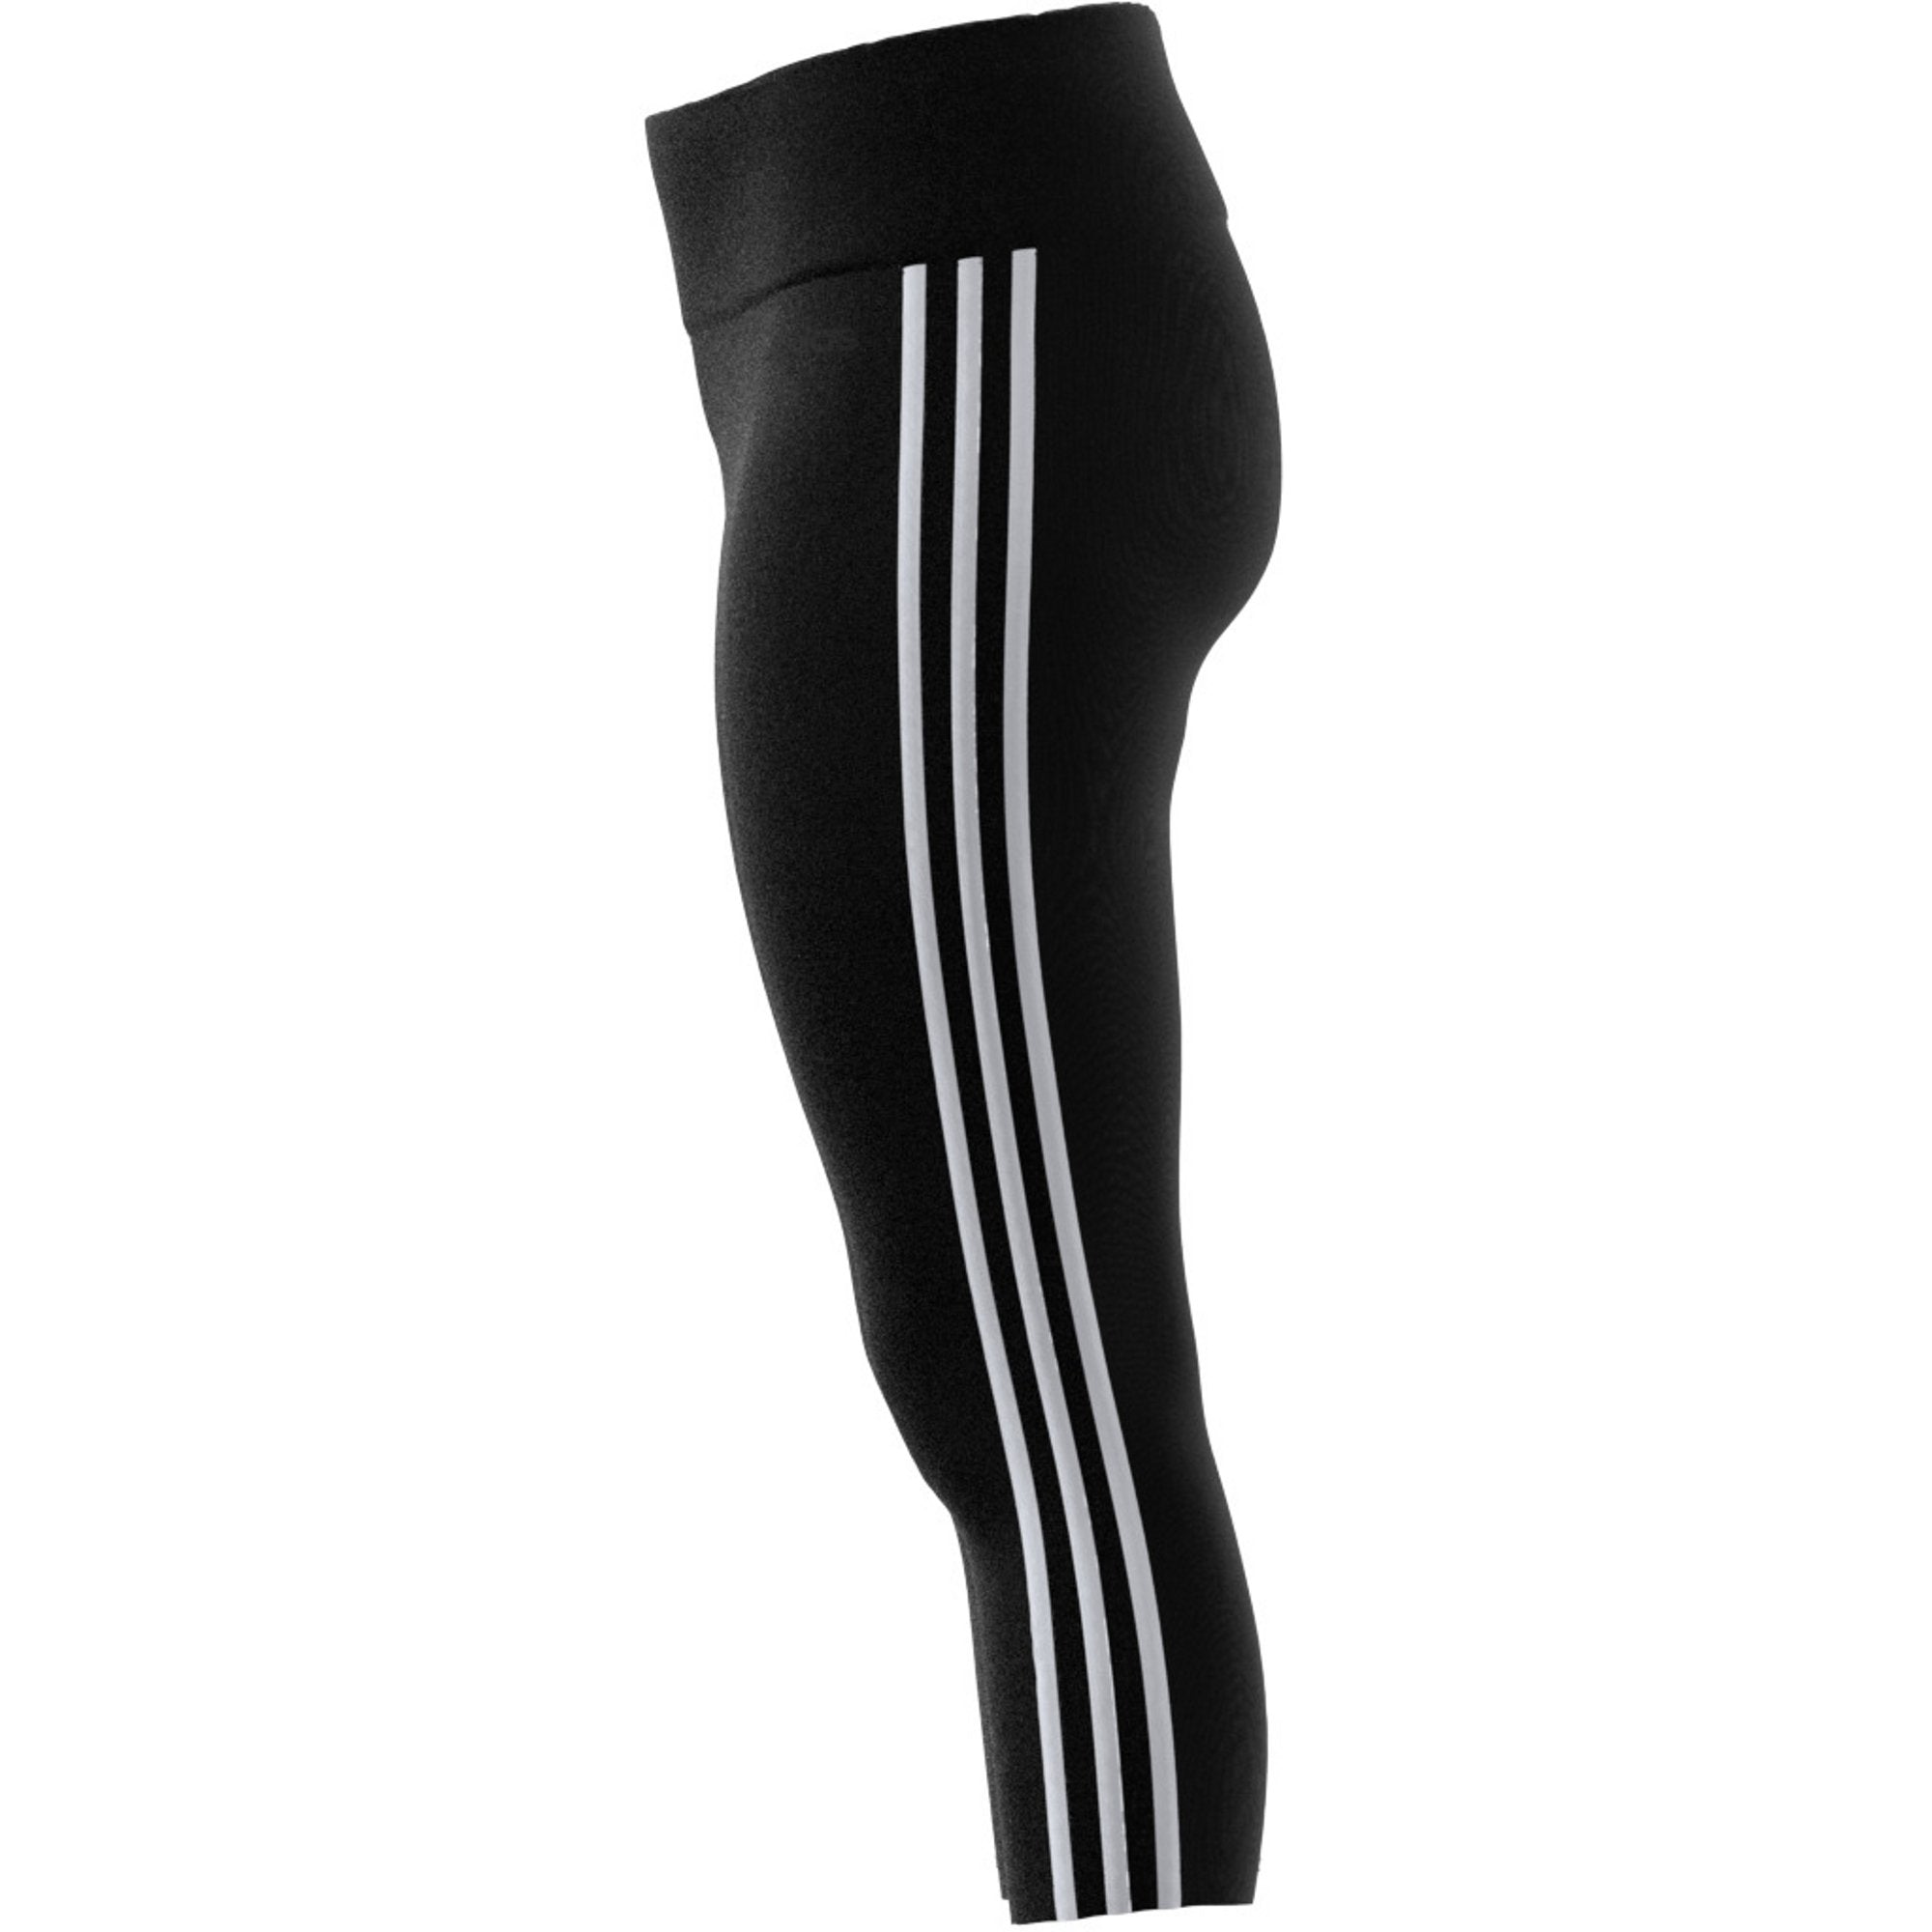 Adidas Womens Design 2 Move 3-Stripes 3/4 Tights - black/white